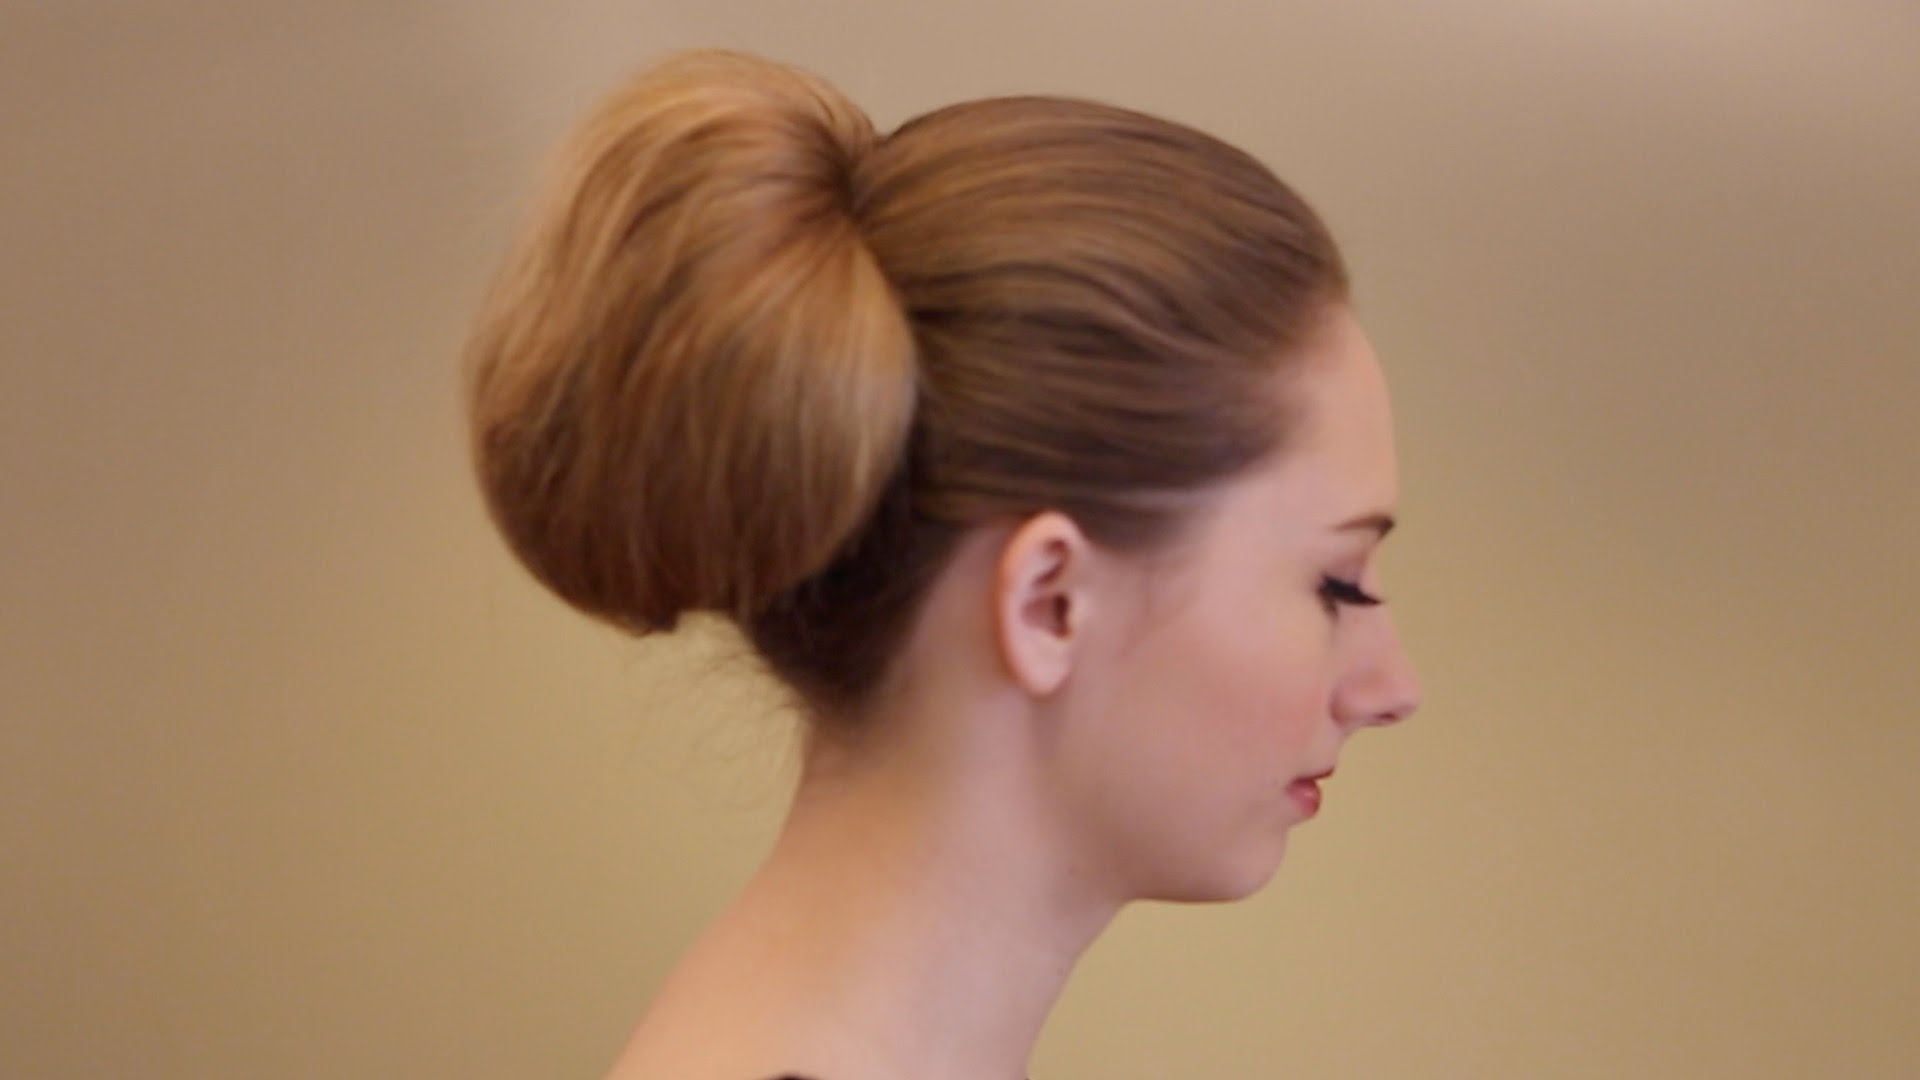 Most Current Long Braided Ponytail Hairstyles With Bouffant For Tutorial: How To Create A Vintage Inspired Bouffant Ponytail – Youtube (View 17 of 20)